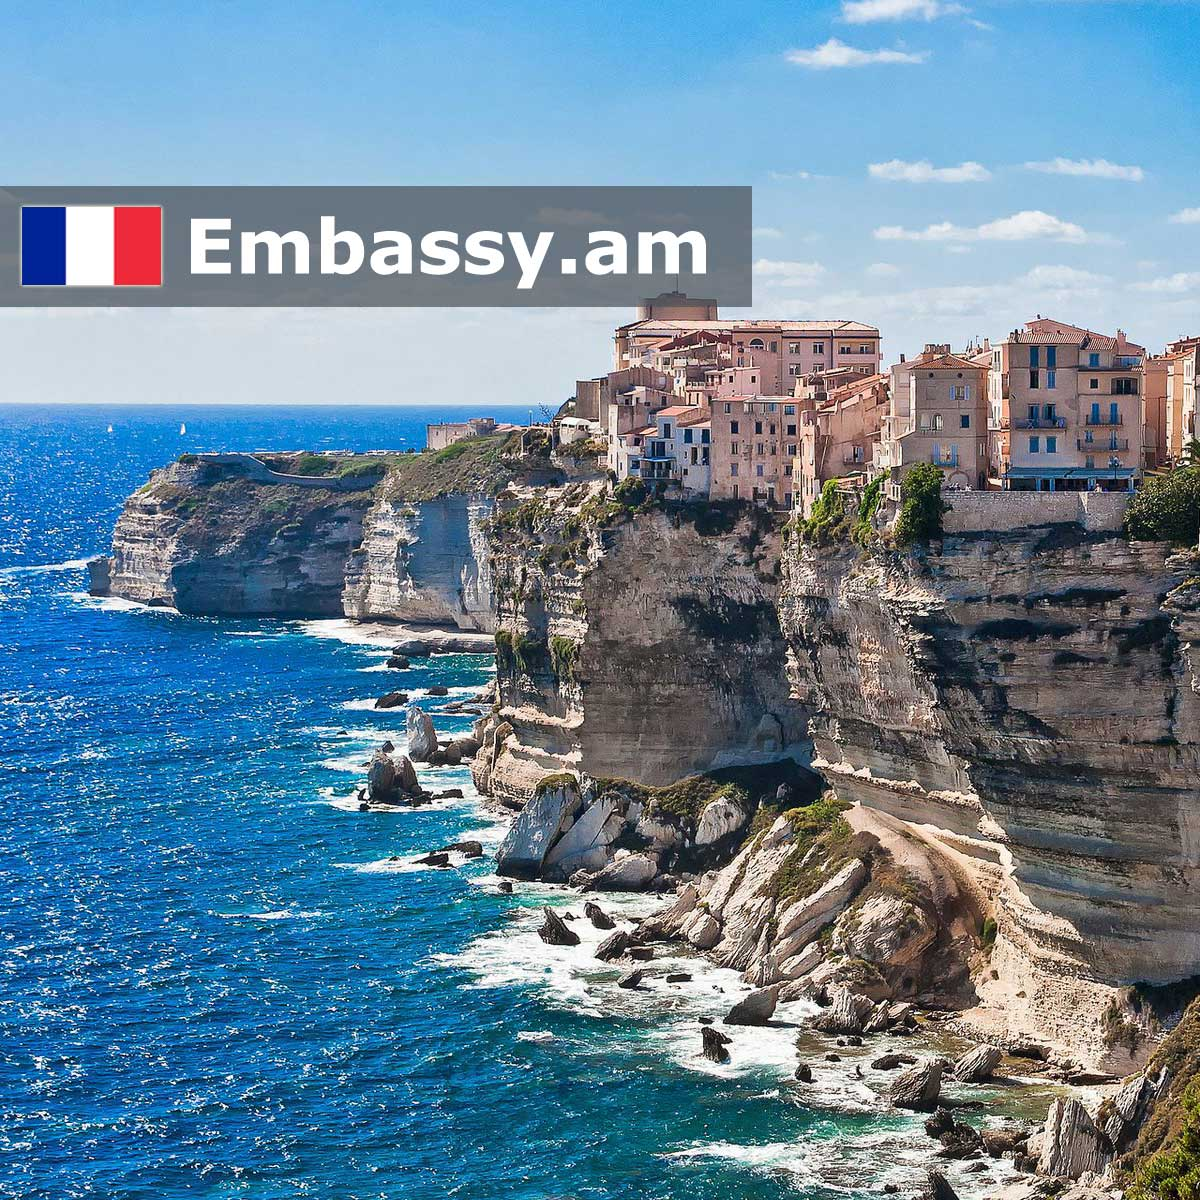 Corsica - Hotels in France - Embassy.am